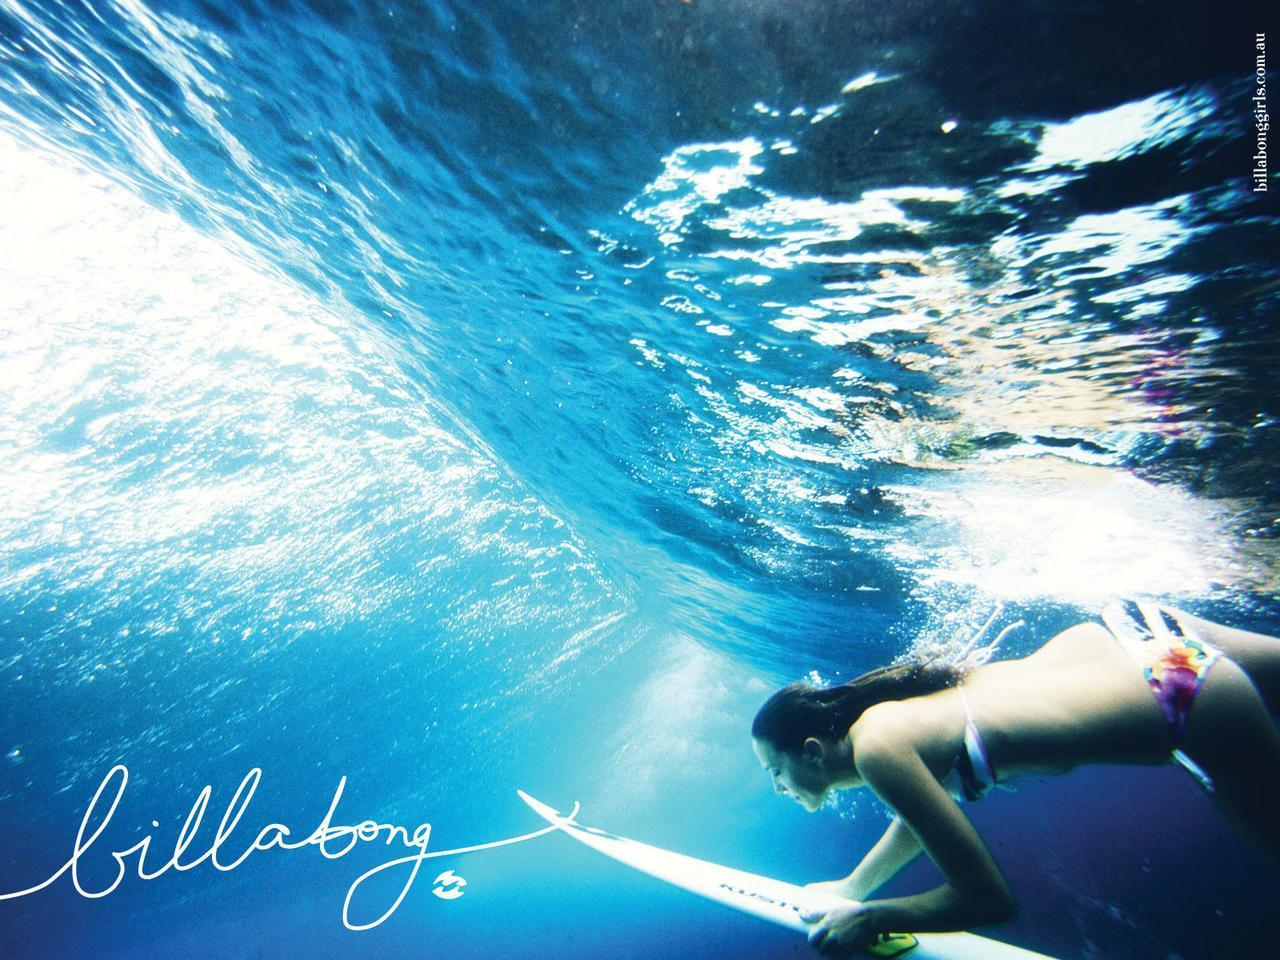 Billabong Surf Wallpapers Hd Wallpaper Cave